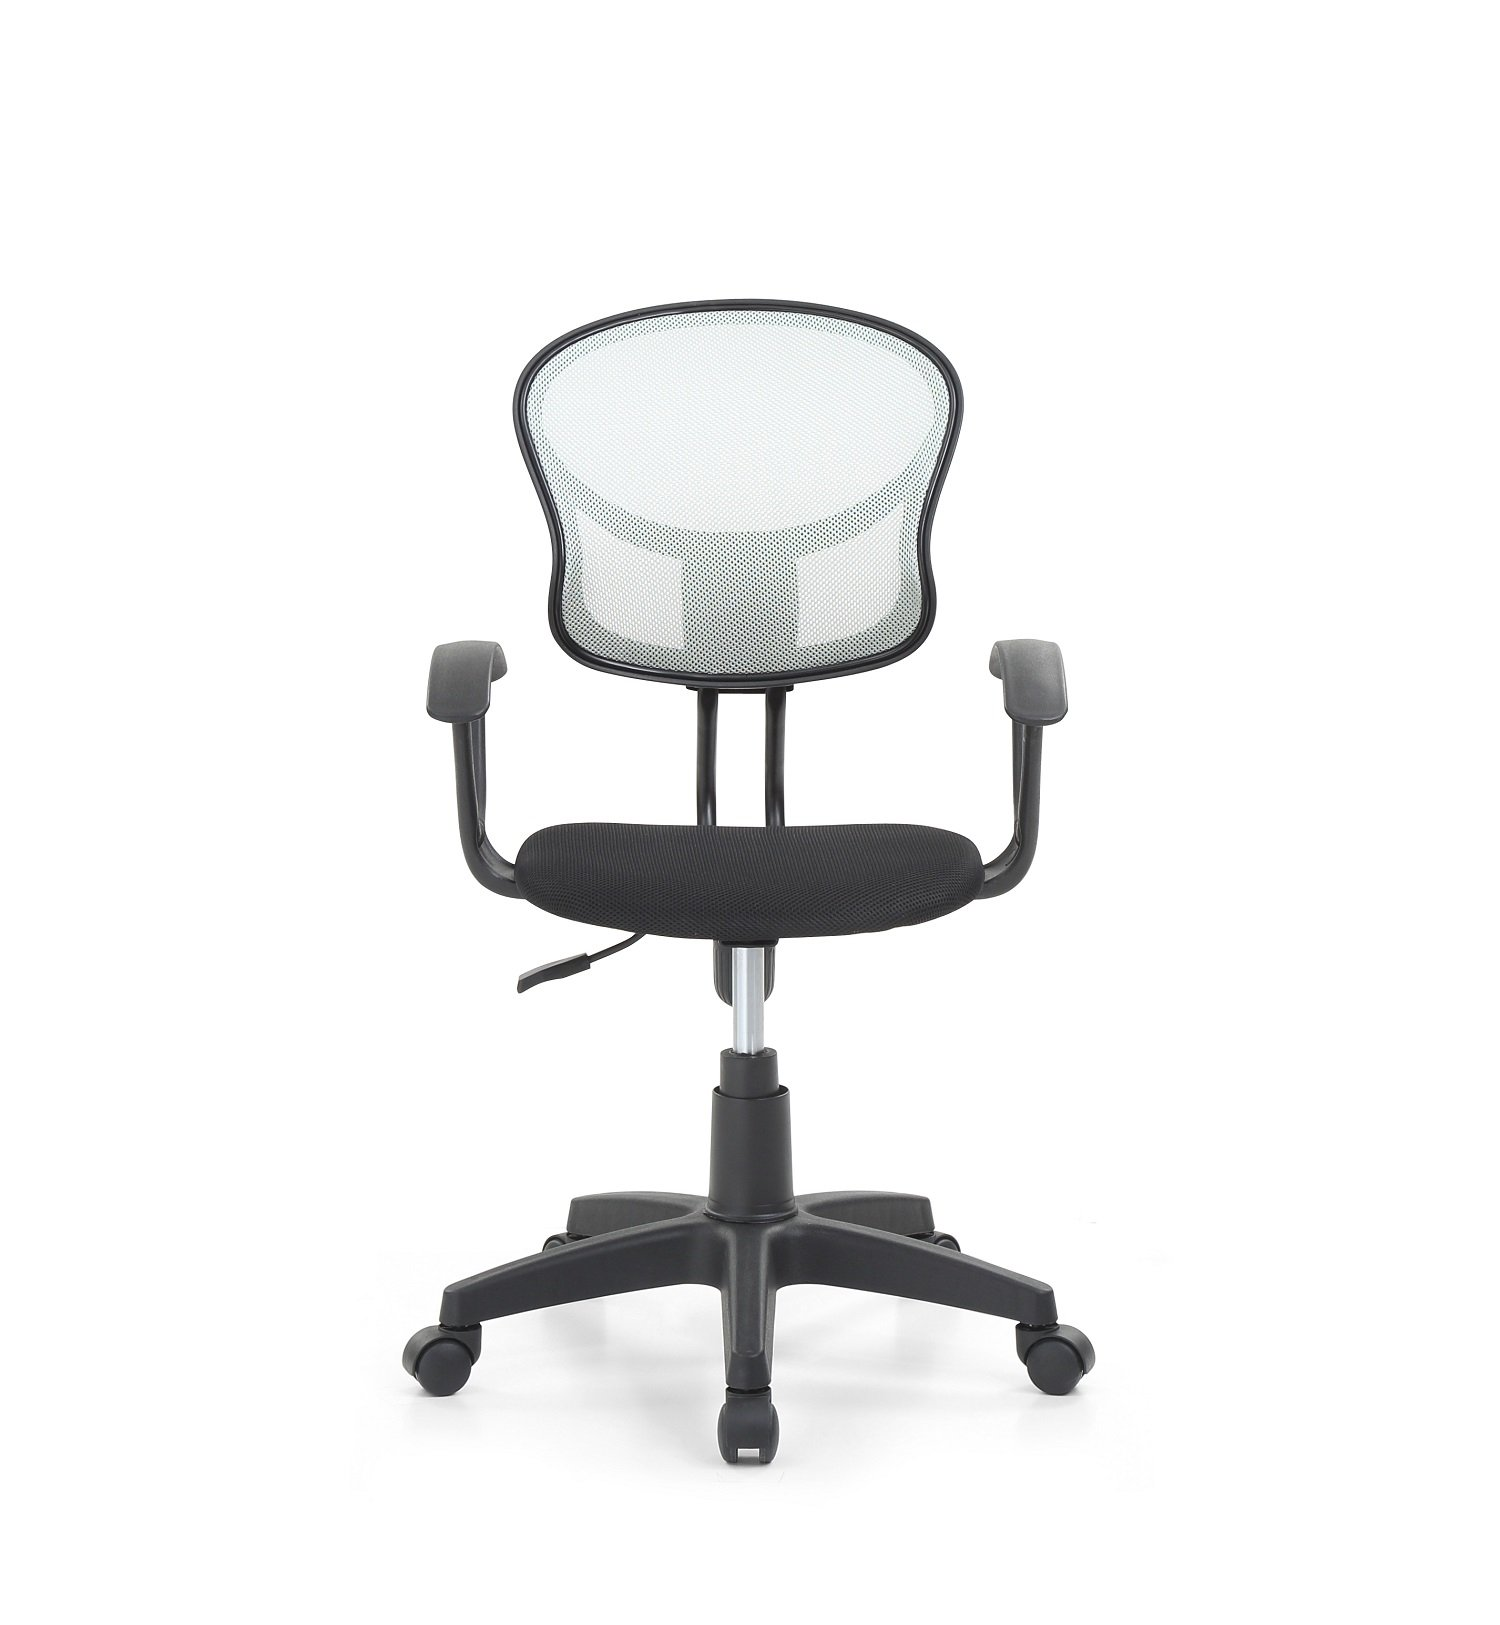 Hodedah Mesh Office Chair with Arms, Adjustable Height, and Swivel Functionality, Grey by HODEDAH IMPORT (Image #2)